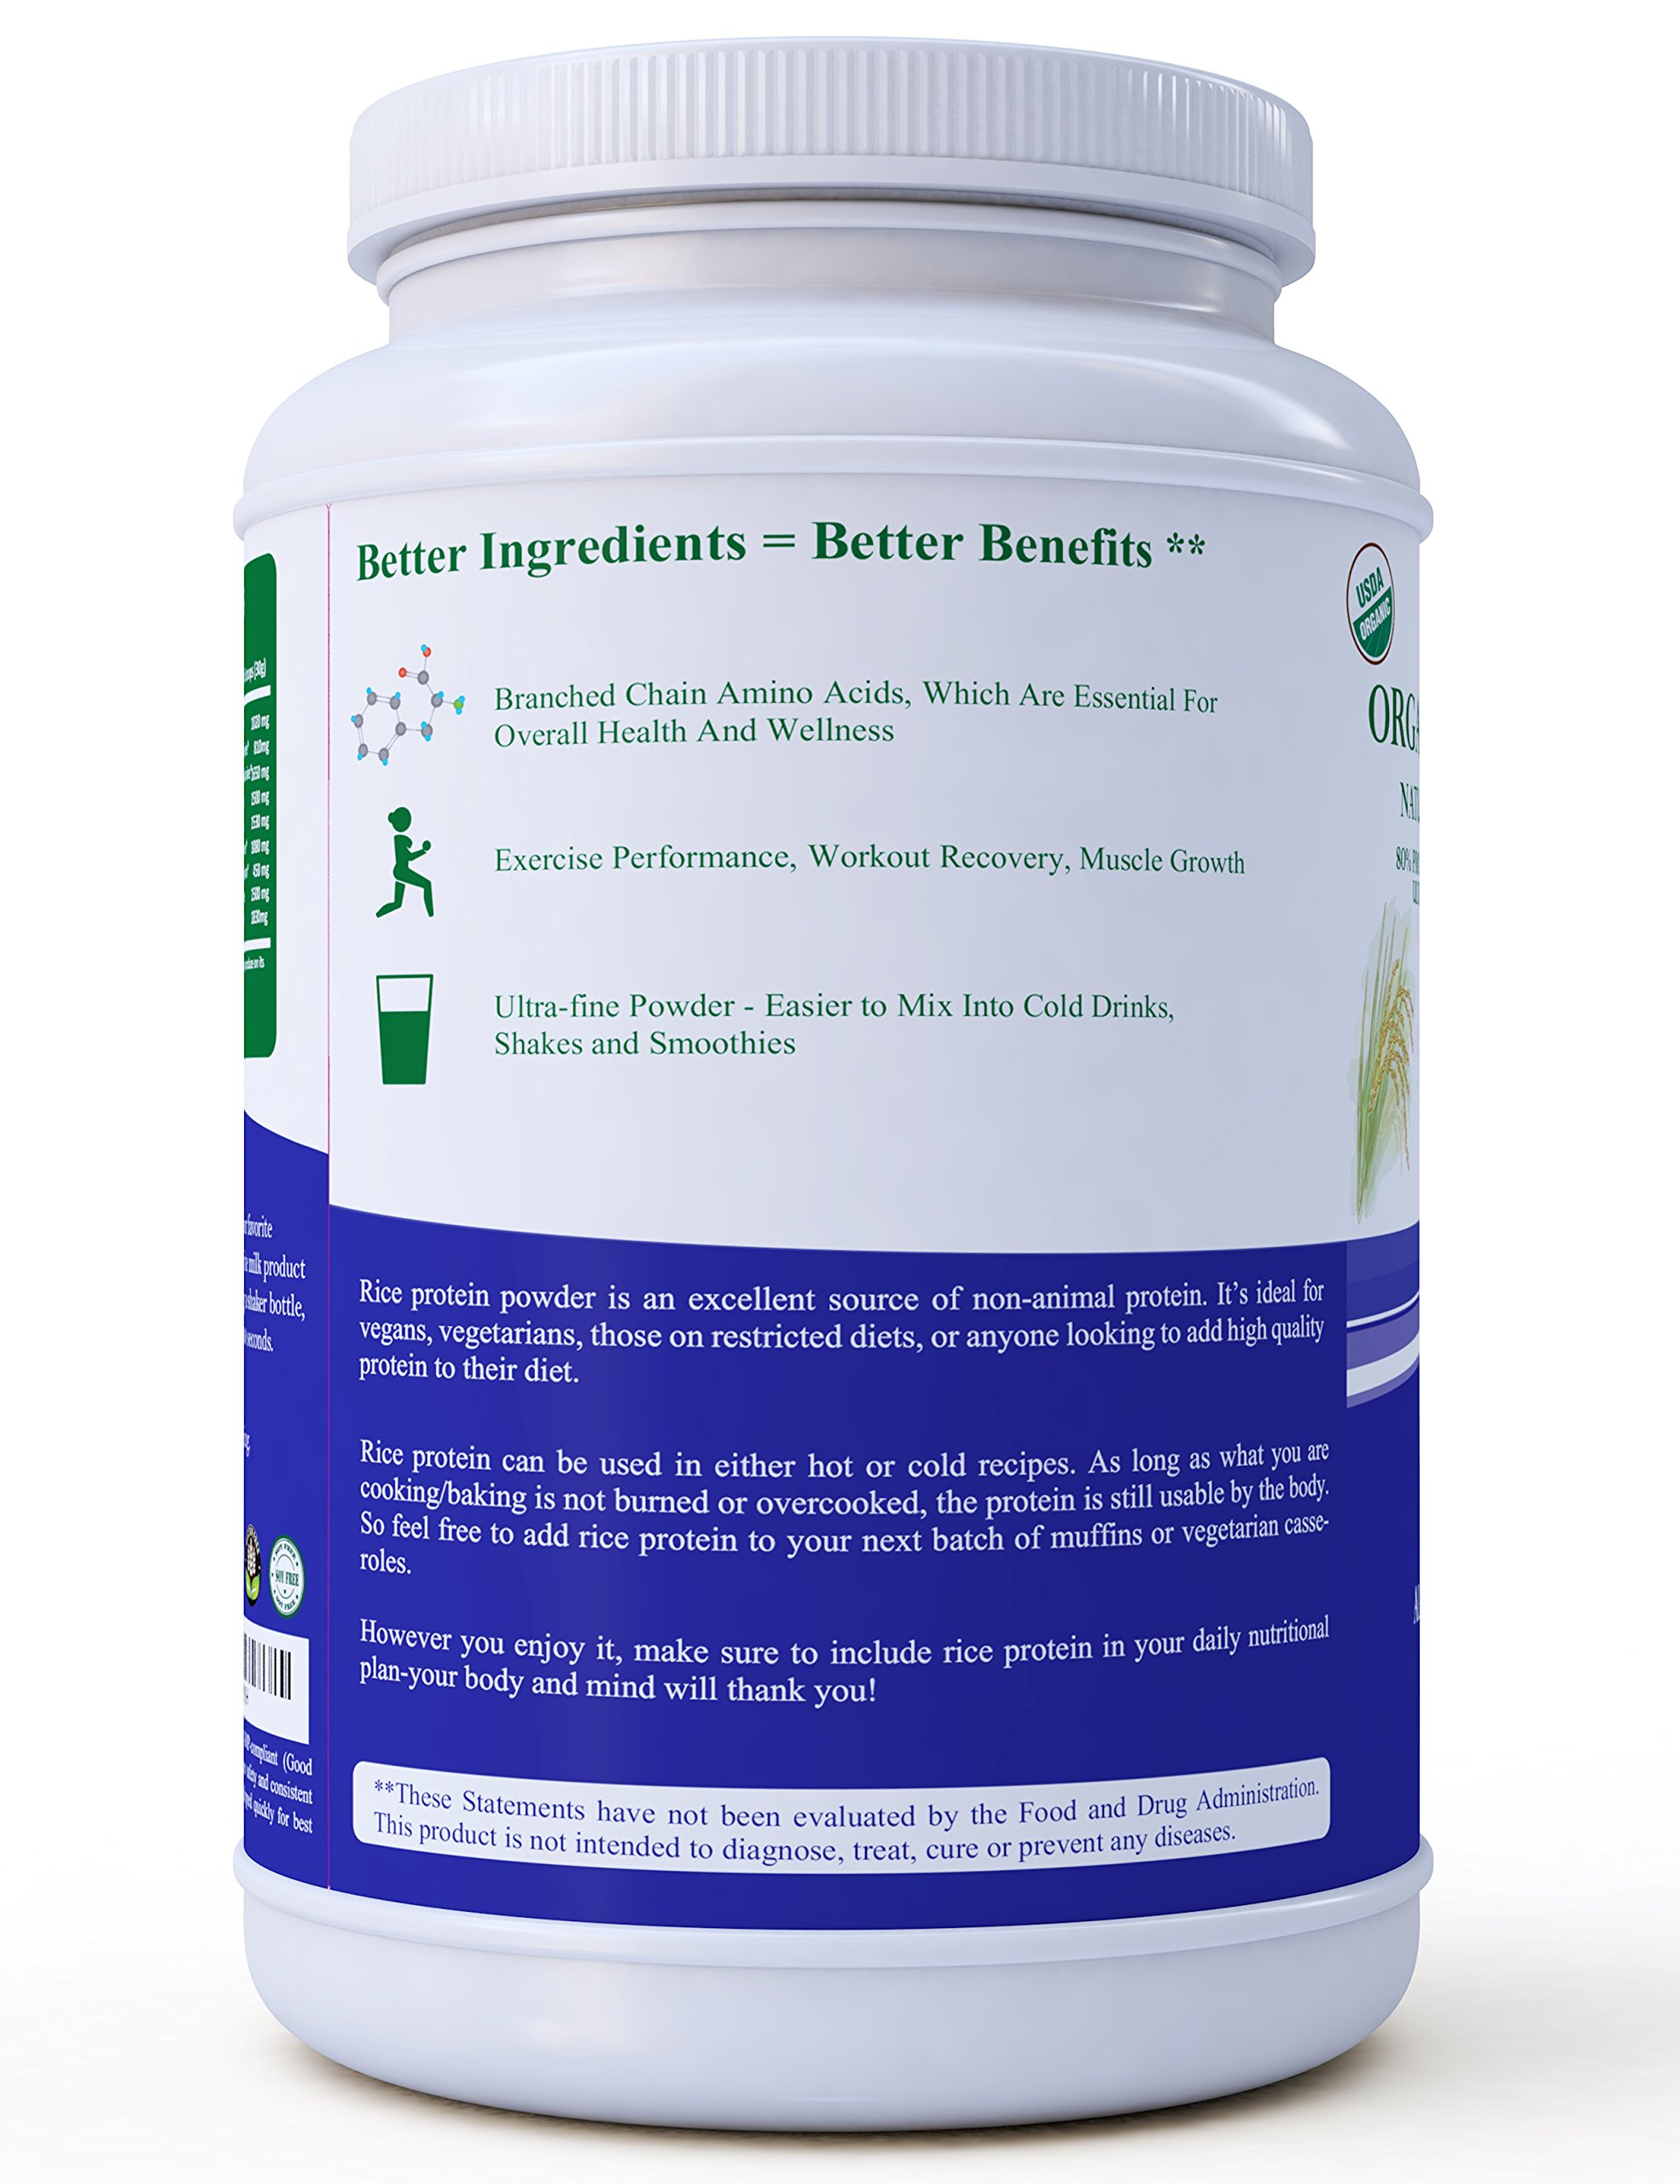 3 lb. Organic Brown Rice Protein Powder. USDA Certified. 80% Protein. No GMO, Soy or Gluten. Vegan. Full Spectrum Amino Acids (BCAA). Ultra-fine Powder Mixes Best in Drinks. by Zen Principle (Image #3)